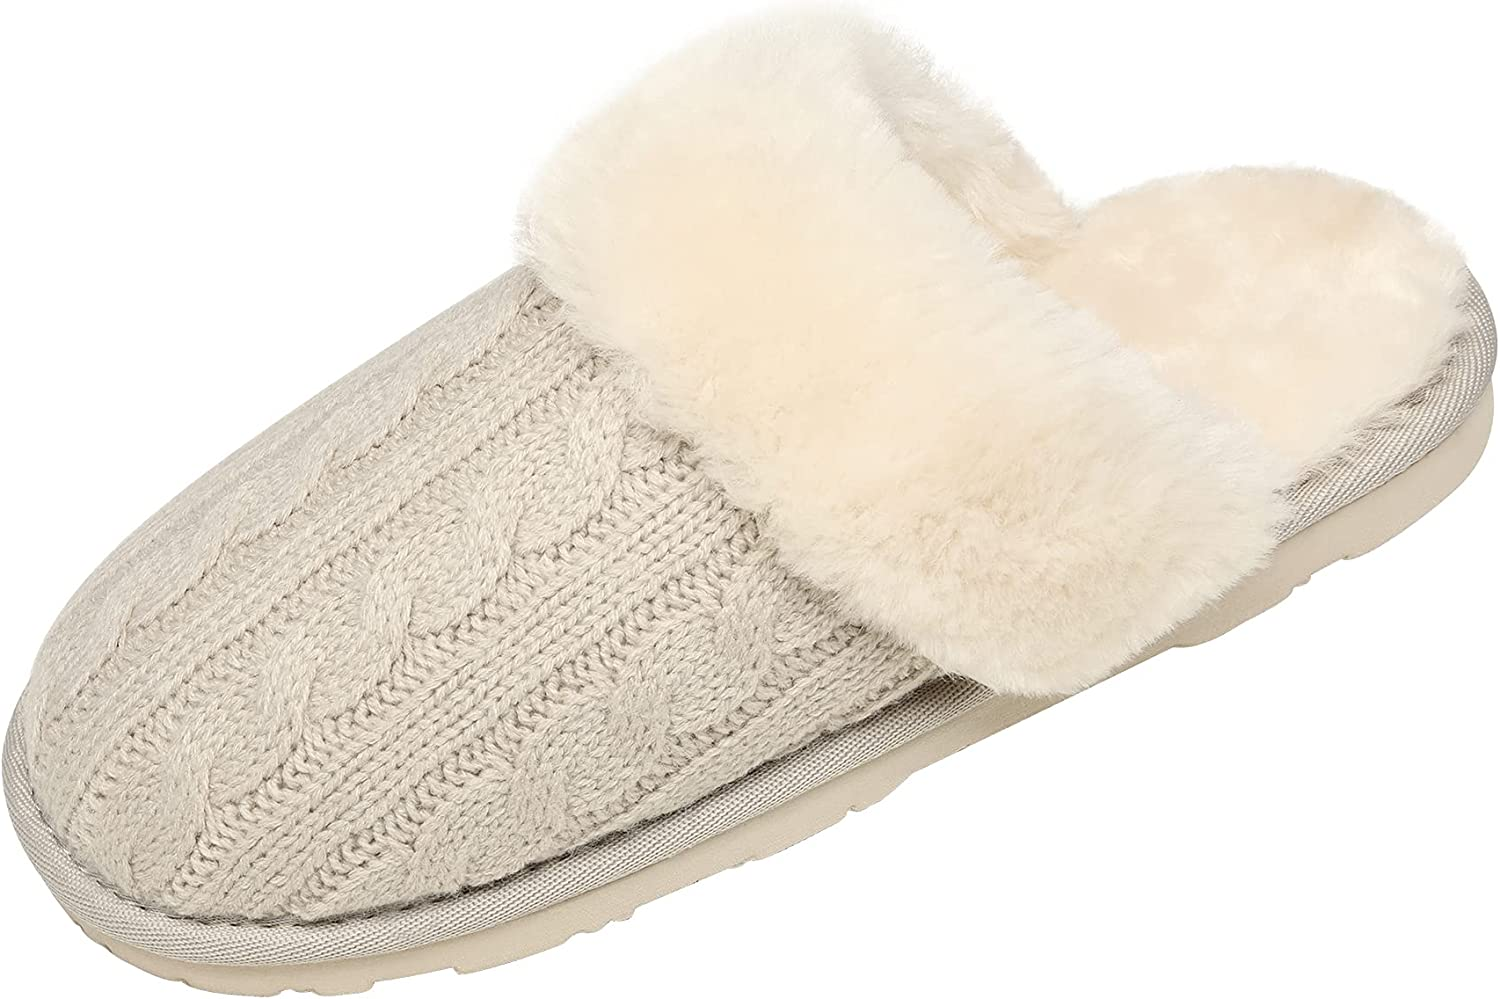 Free shipping on posting reviews DREAM PAIRS Women's Ranking integrated 1st place Cable Knit Fur Faux Mules Slippers Comfy